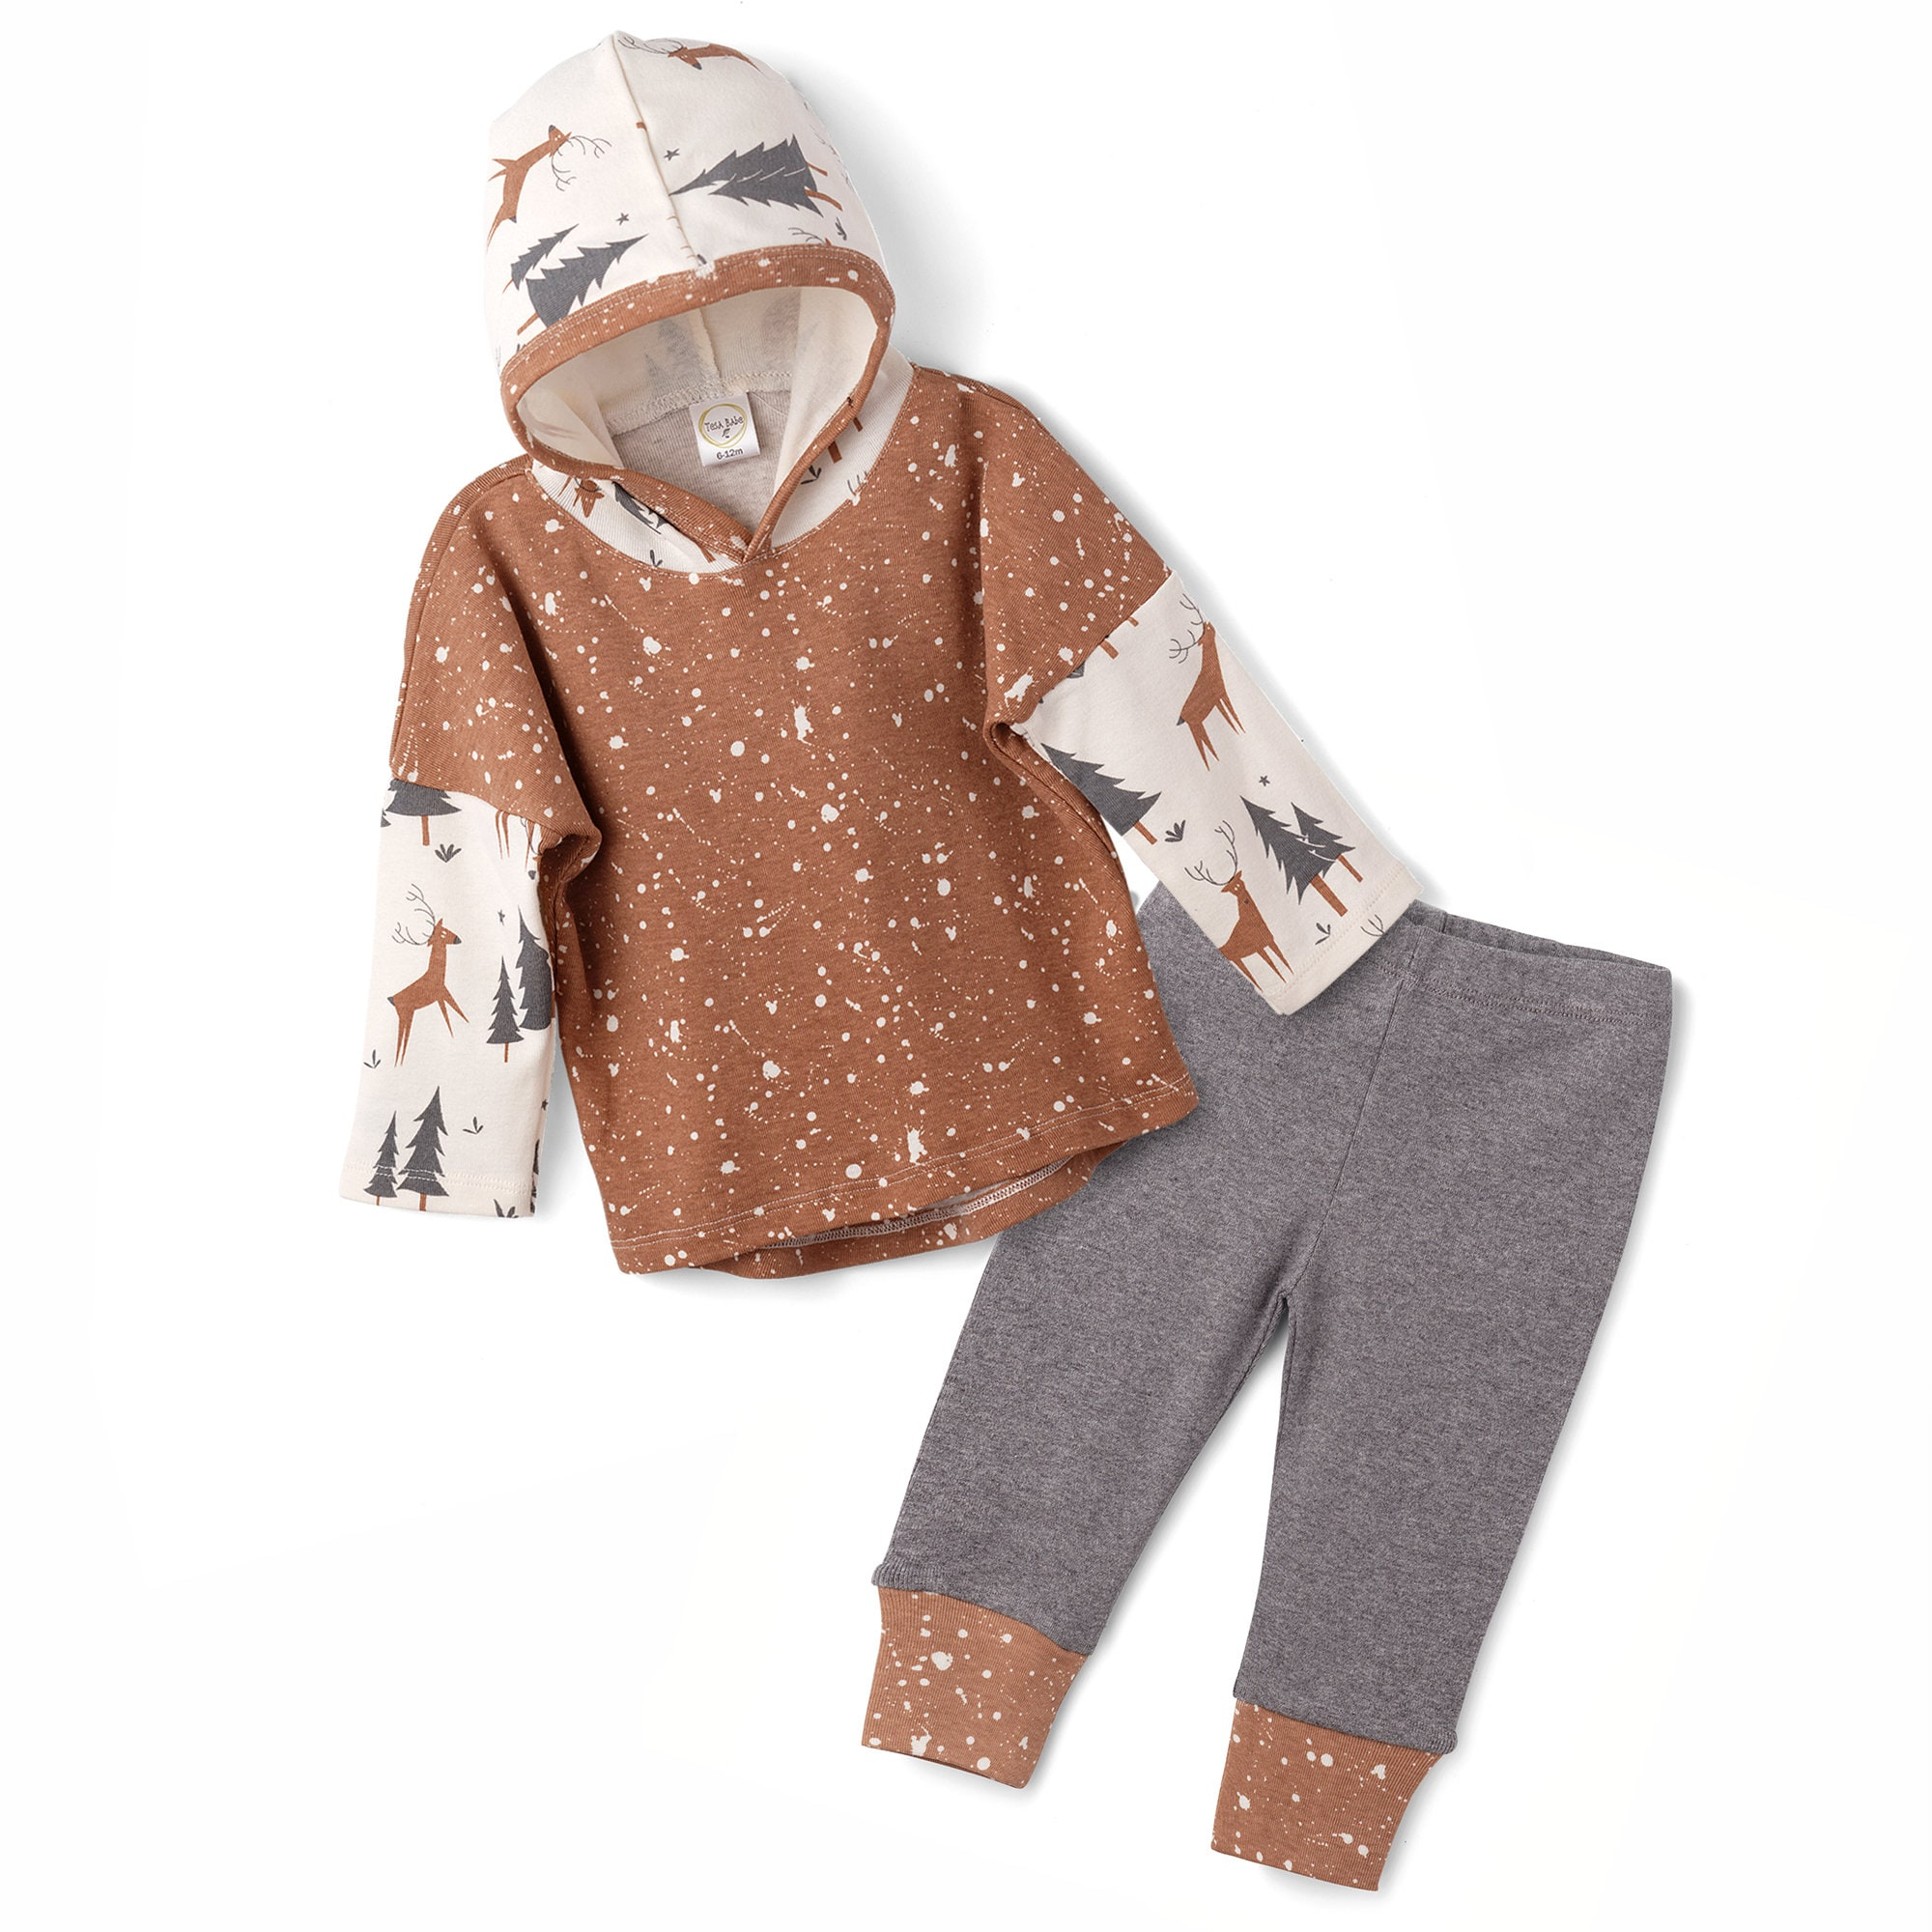 35a8d8907 Baby Hoodie Outfit